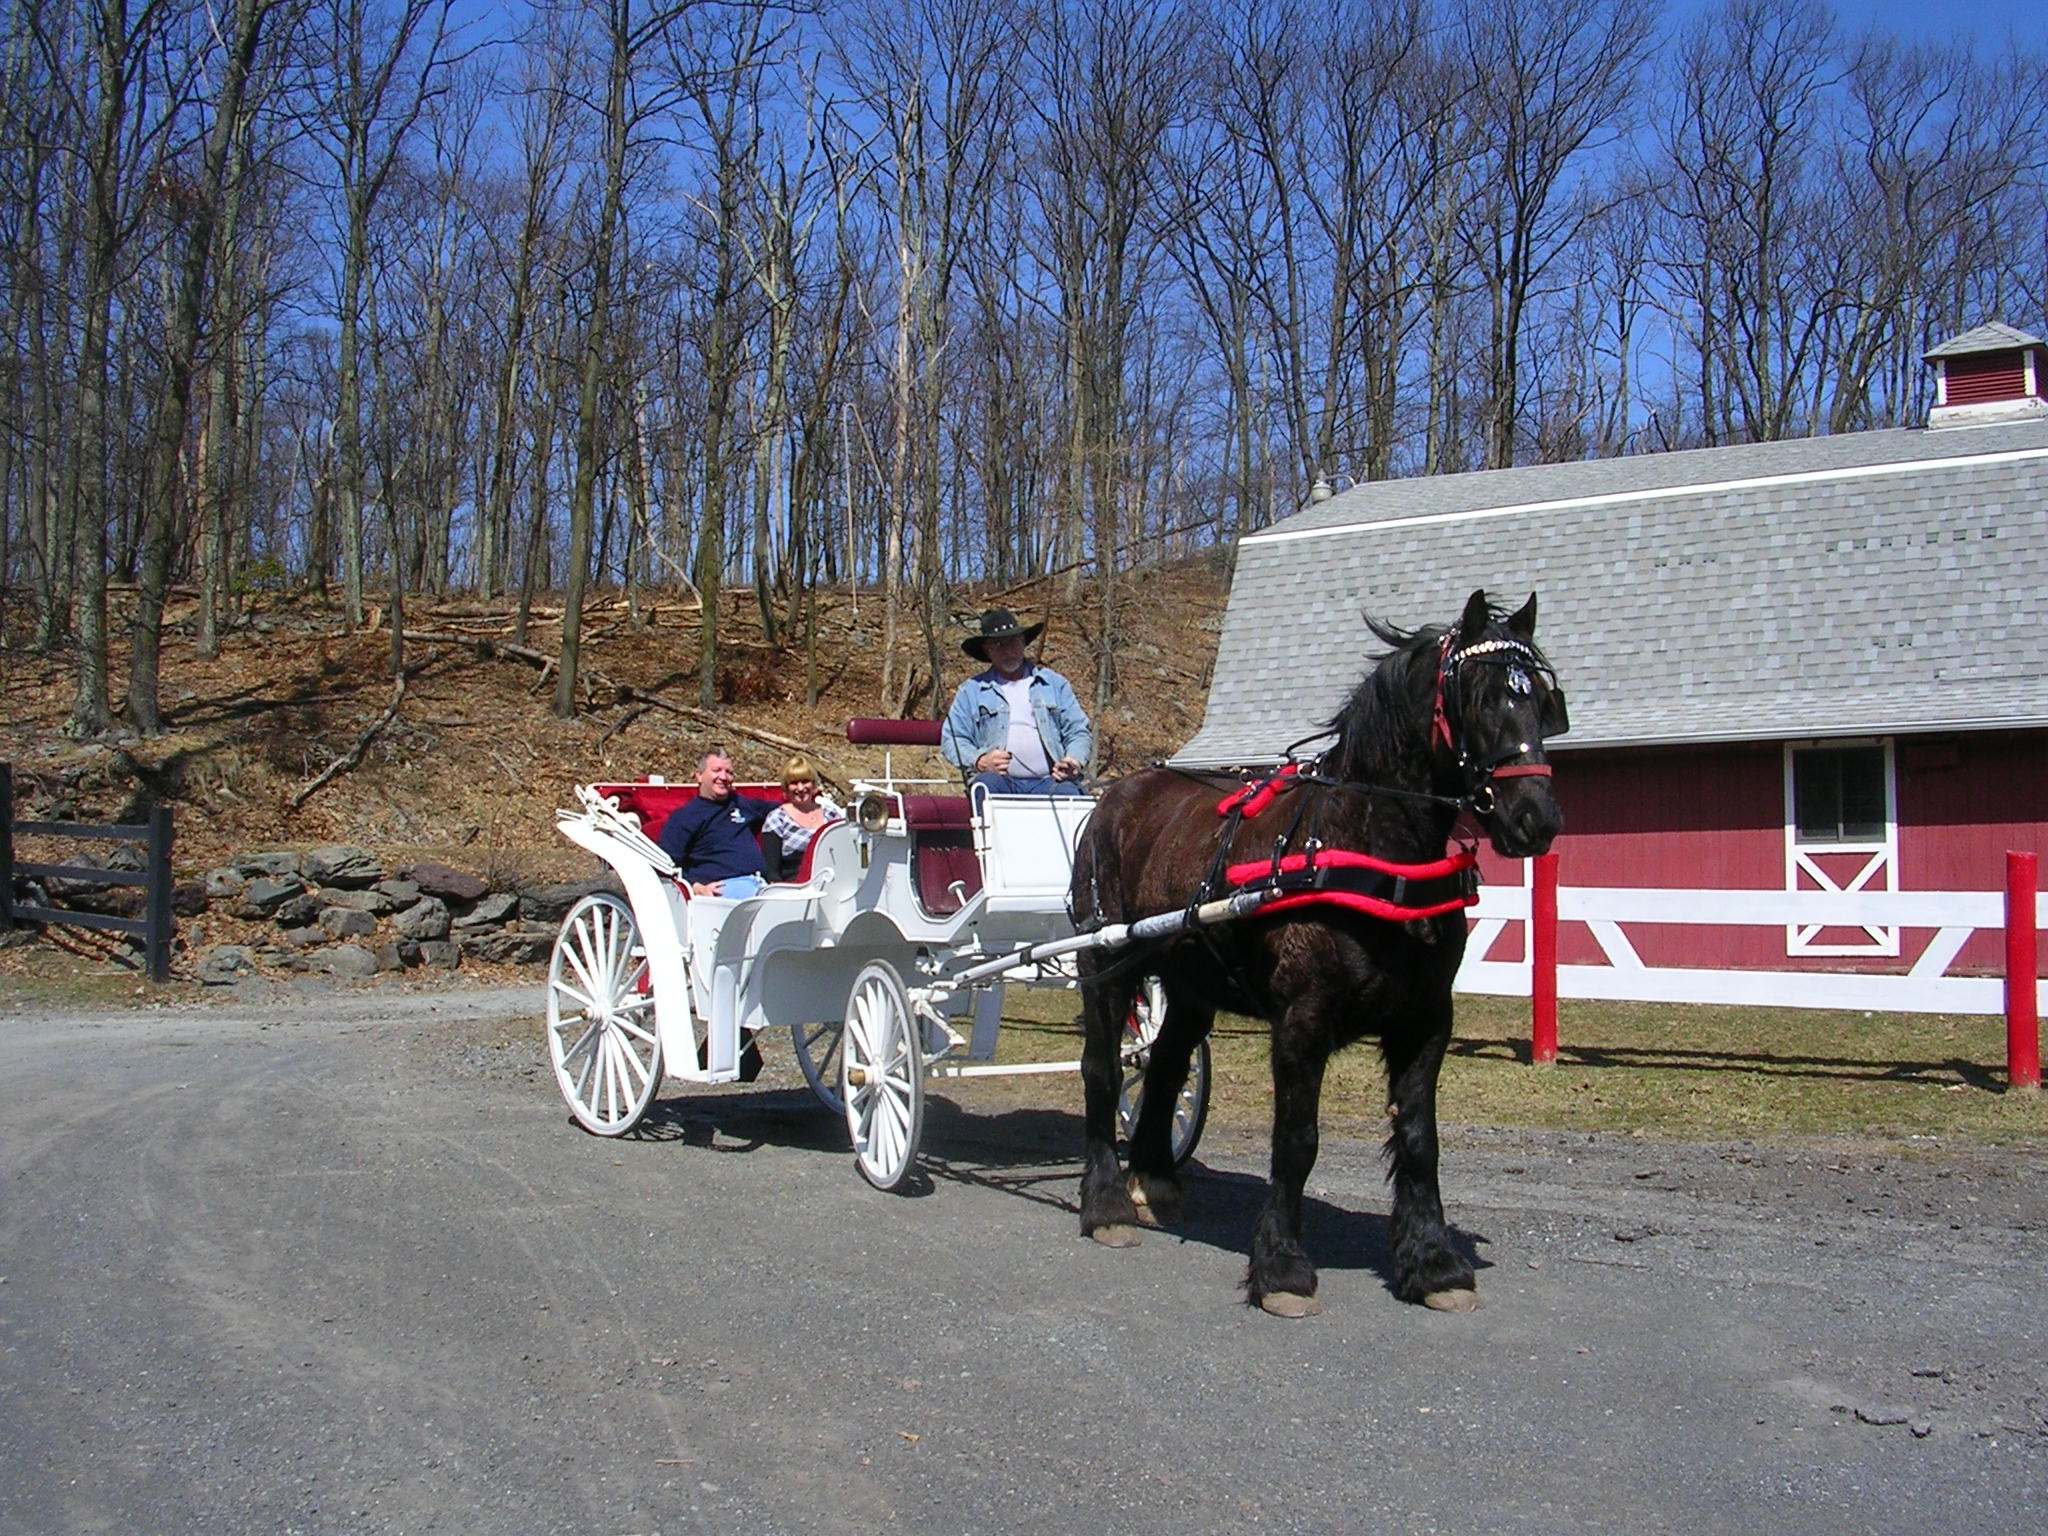 Happy Trails Riding Stables in the Pocono Mountains Hamlin western and english style saddles, trail rides, carriage, sleigh, and hay rides, boarding and horse sales